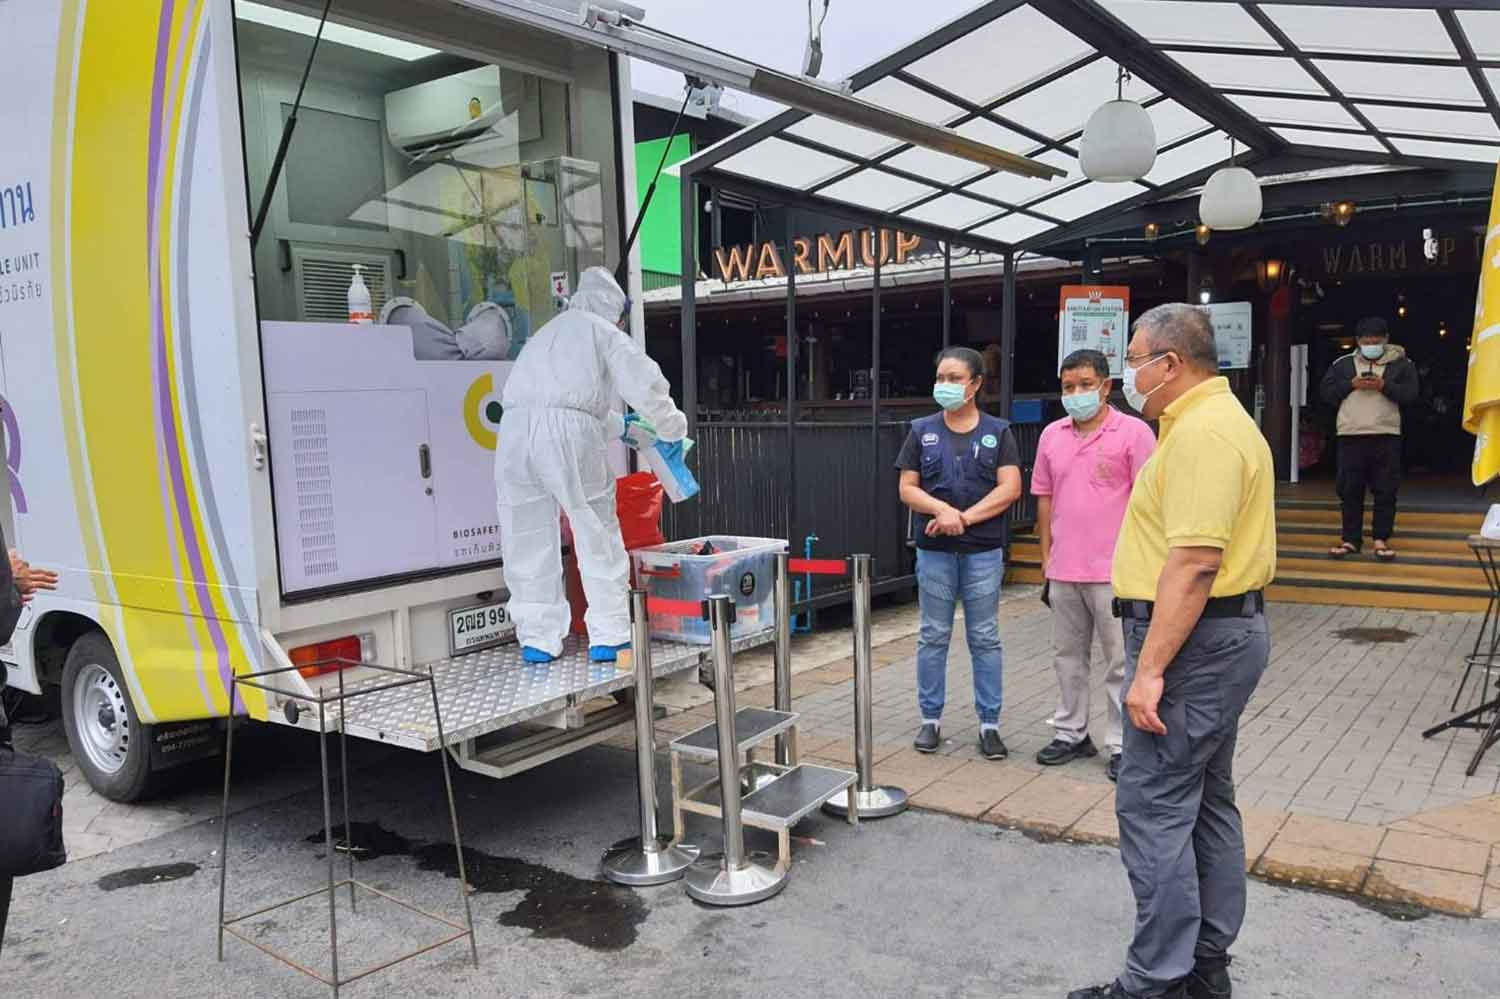 Officials close Warmupcafe in Chiang Mai province on Tuesday after Covid-19 infection at the pub. (Photo: Panumet Tanraksa)